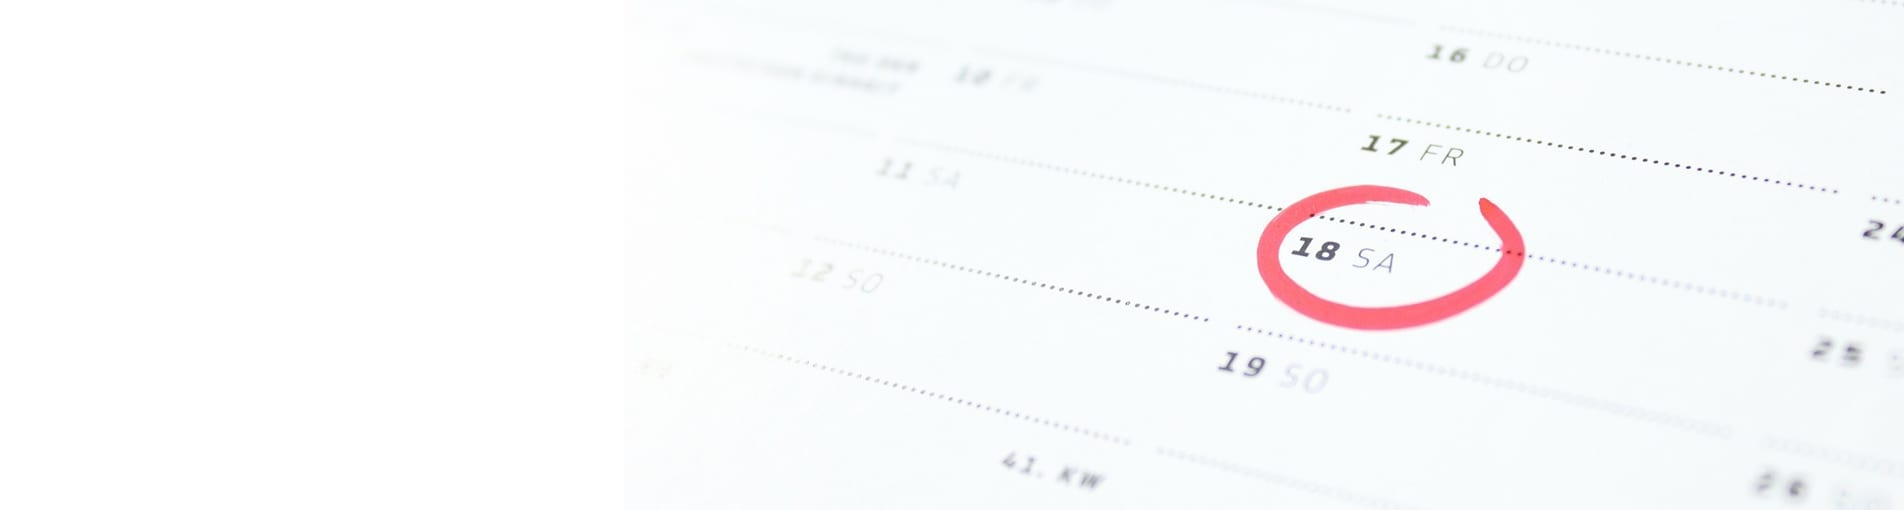 Header dates rentrées